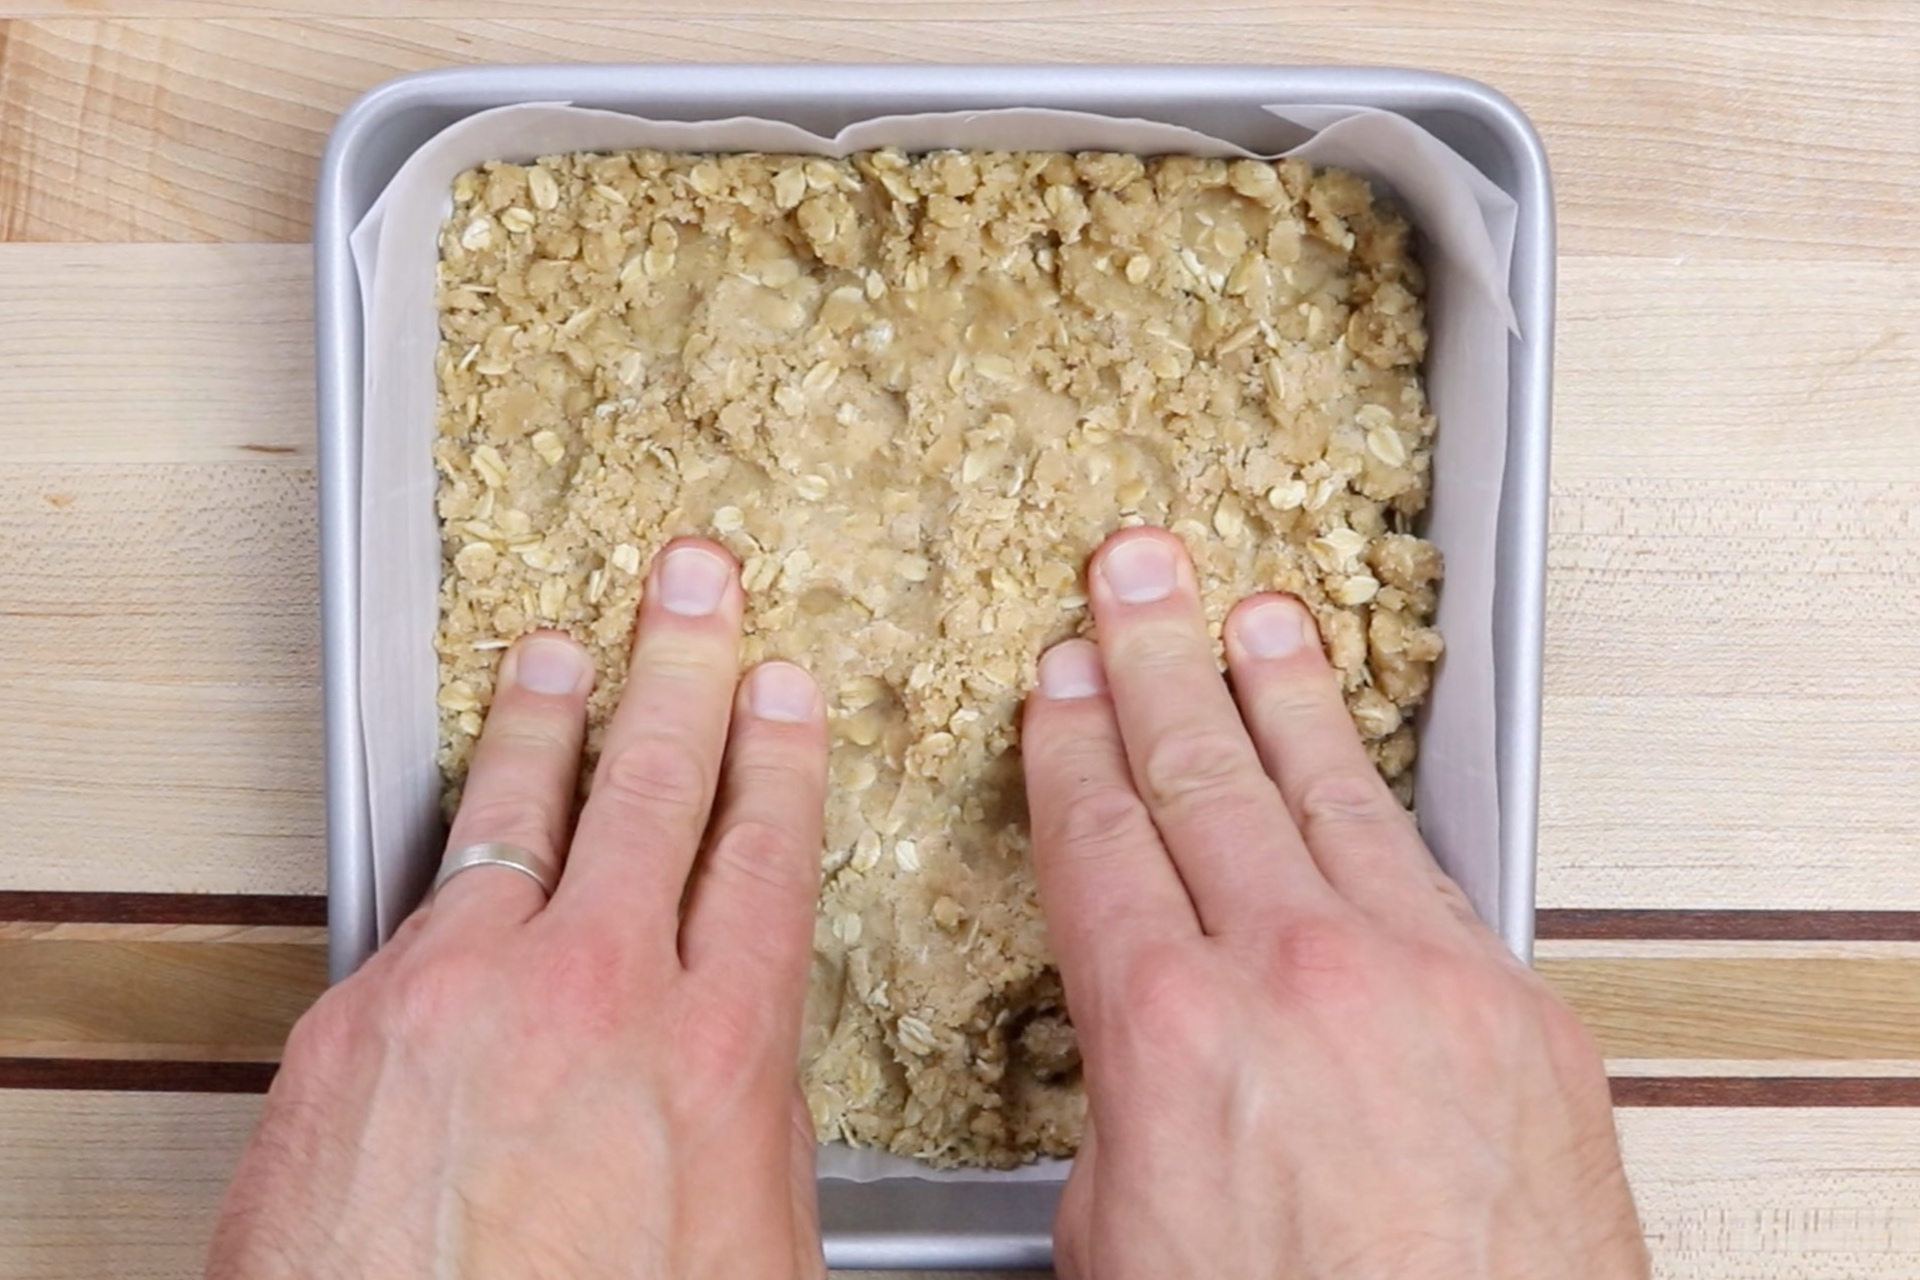 4. Set aside 1 1/2 cups of the crumble mixture, then press remaining crumble into the bottom of your baking dish. Bake for 10 minutes. -